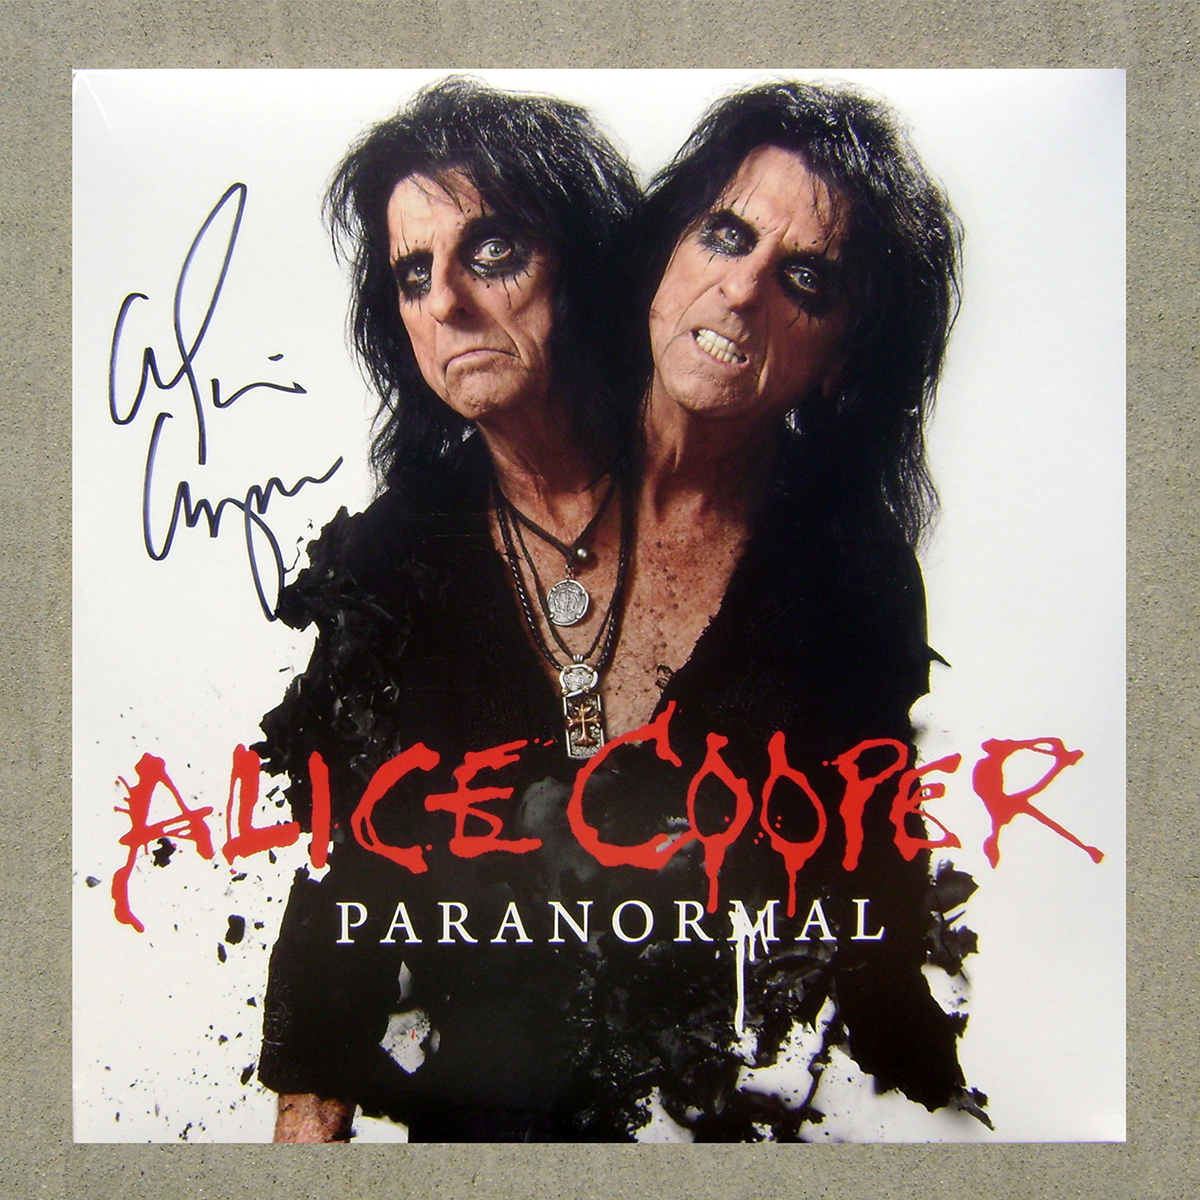 LP - Alice Cooper - Paranormal